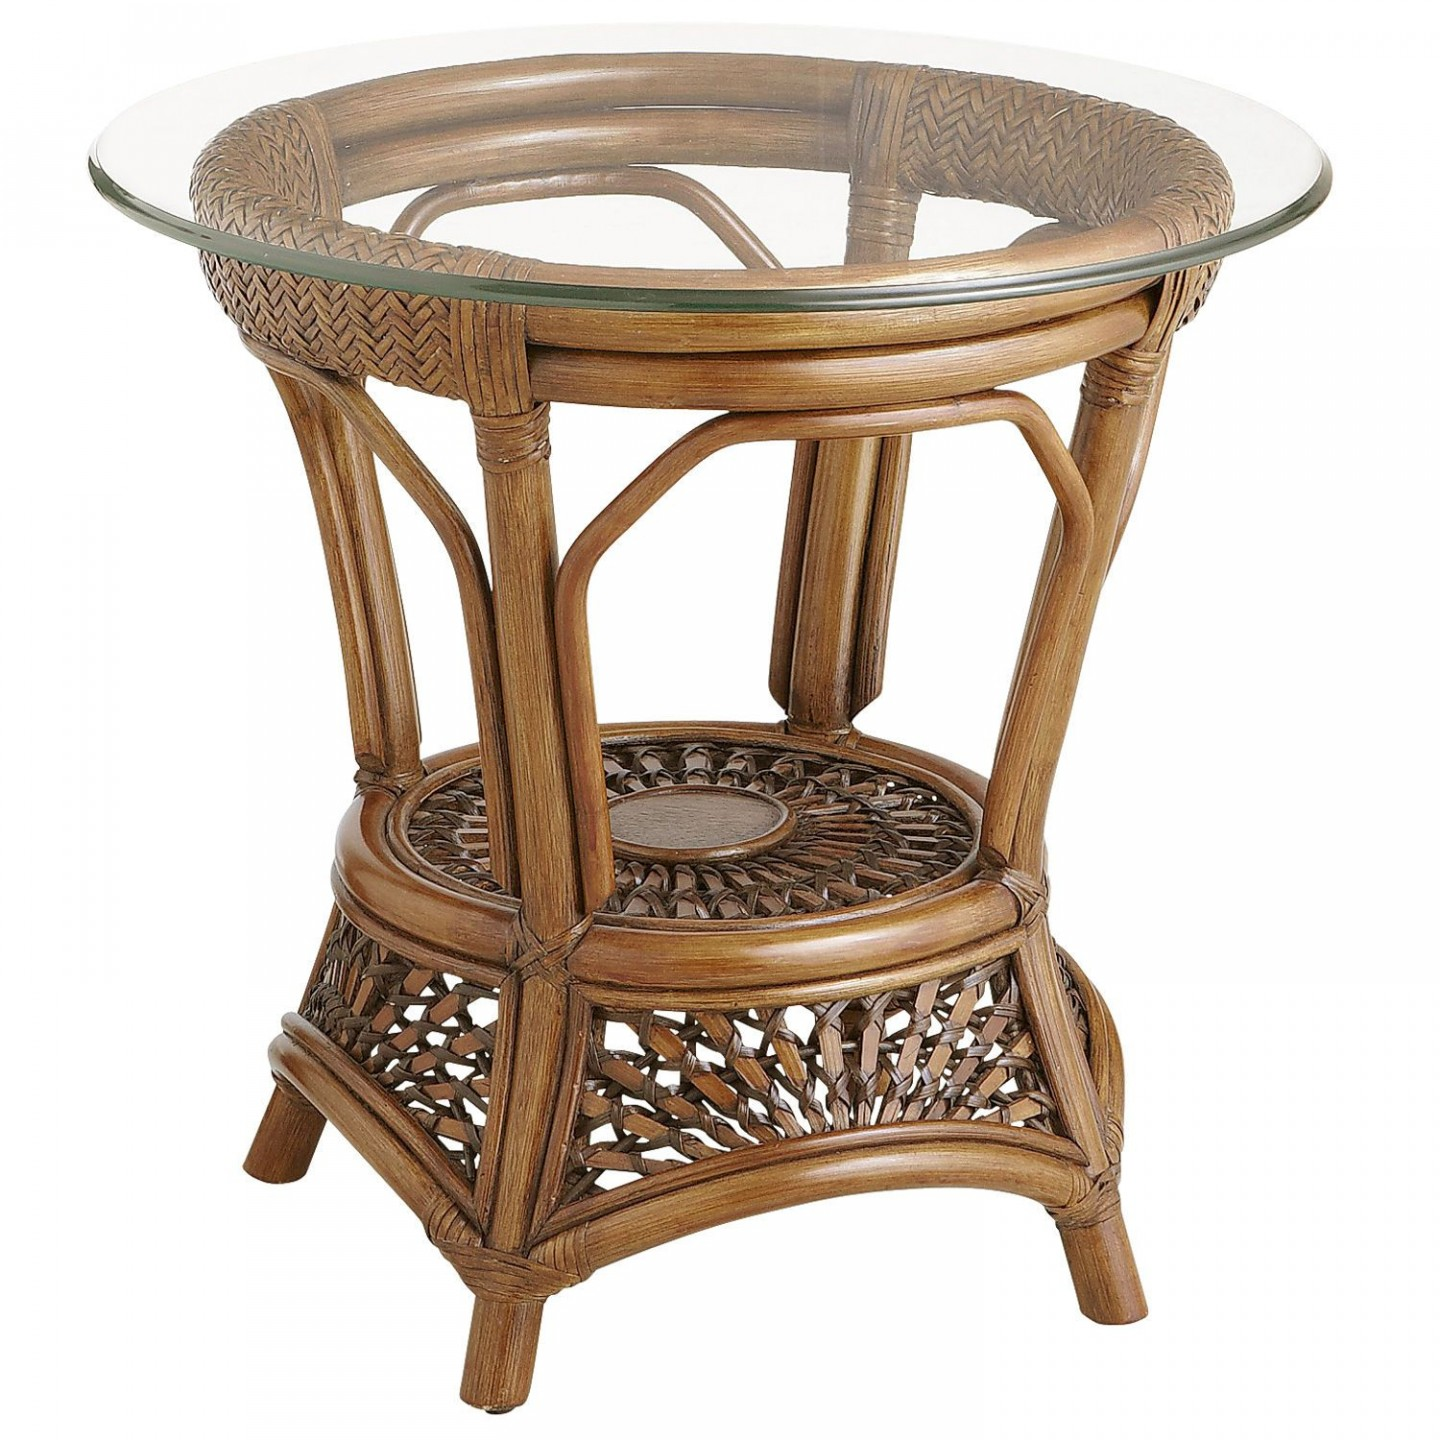 fascinating pier one anywhere coffee table tables unique azteca end pecan brown imports accent hamptons cushions lucite ikea pool covers bunnings wrought iron patio dining